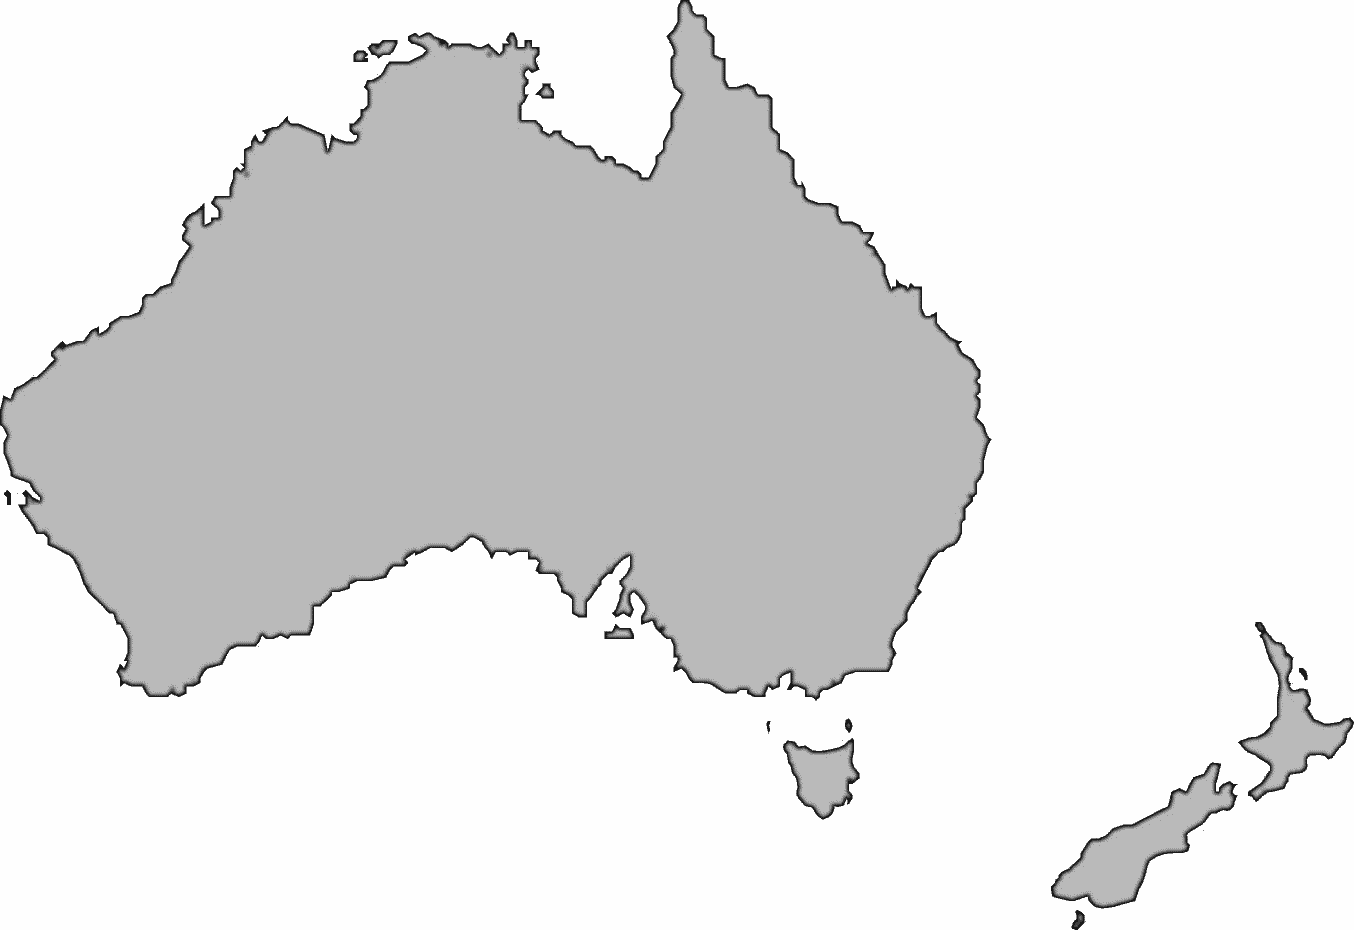 Australia clipart large. Bw geography continents download